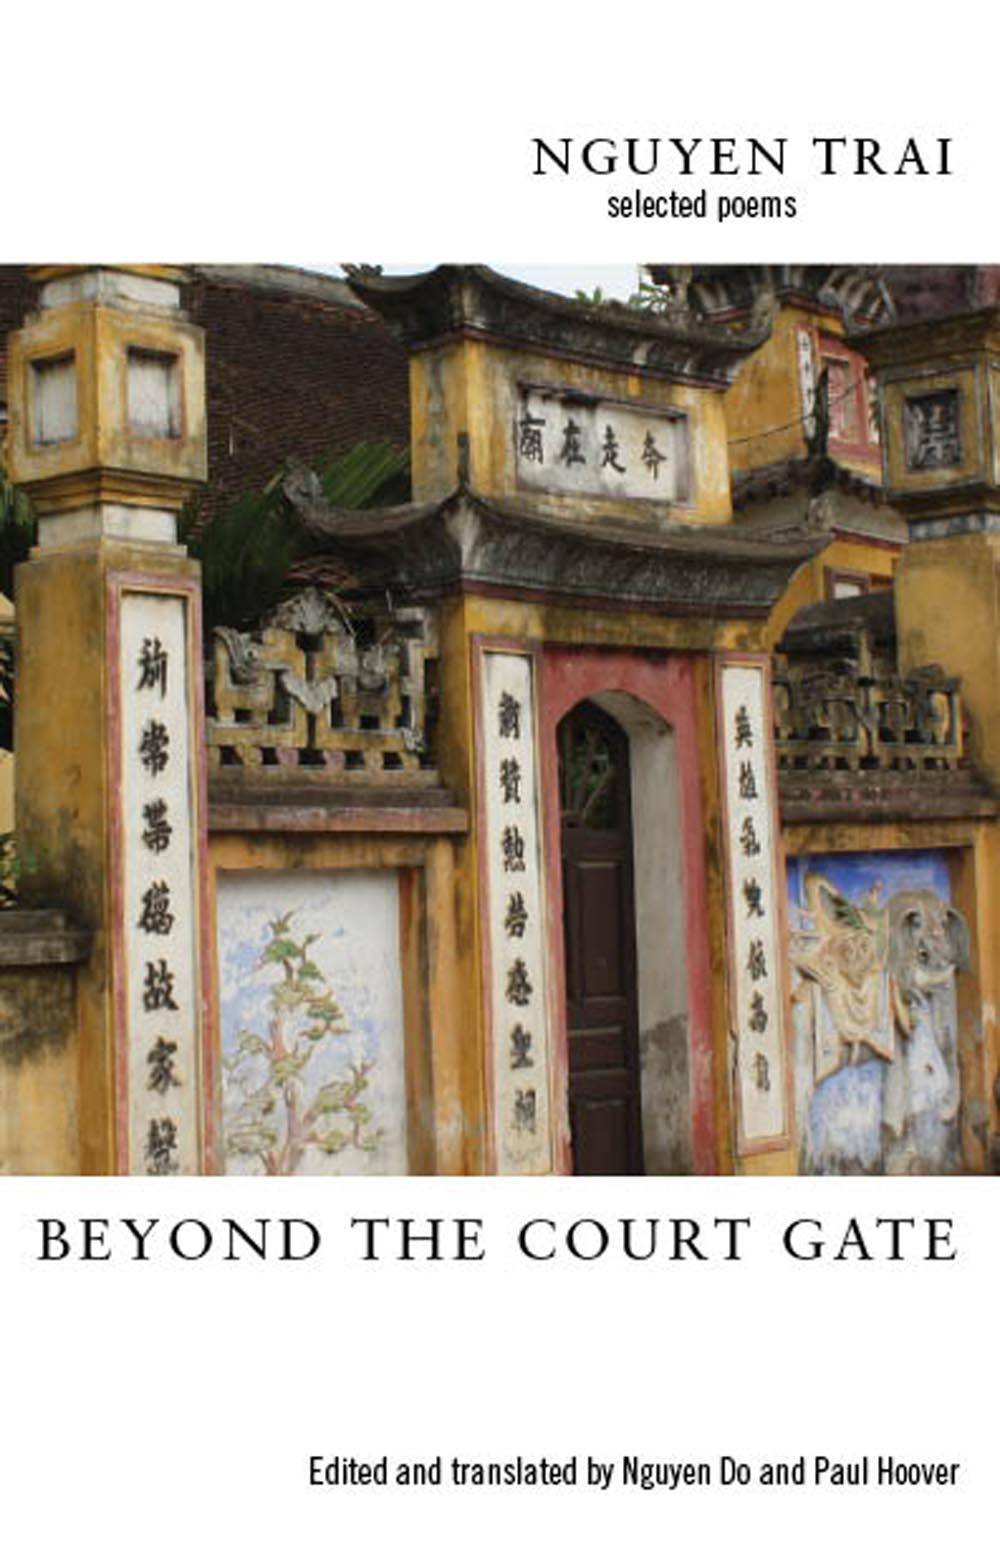 Beyond the Court Gate: Selected Poems of Nguyen TraiNguyen Trai